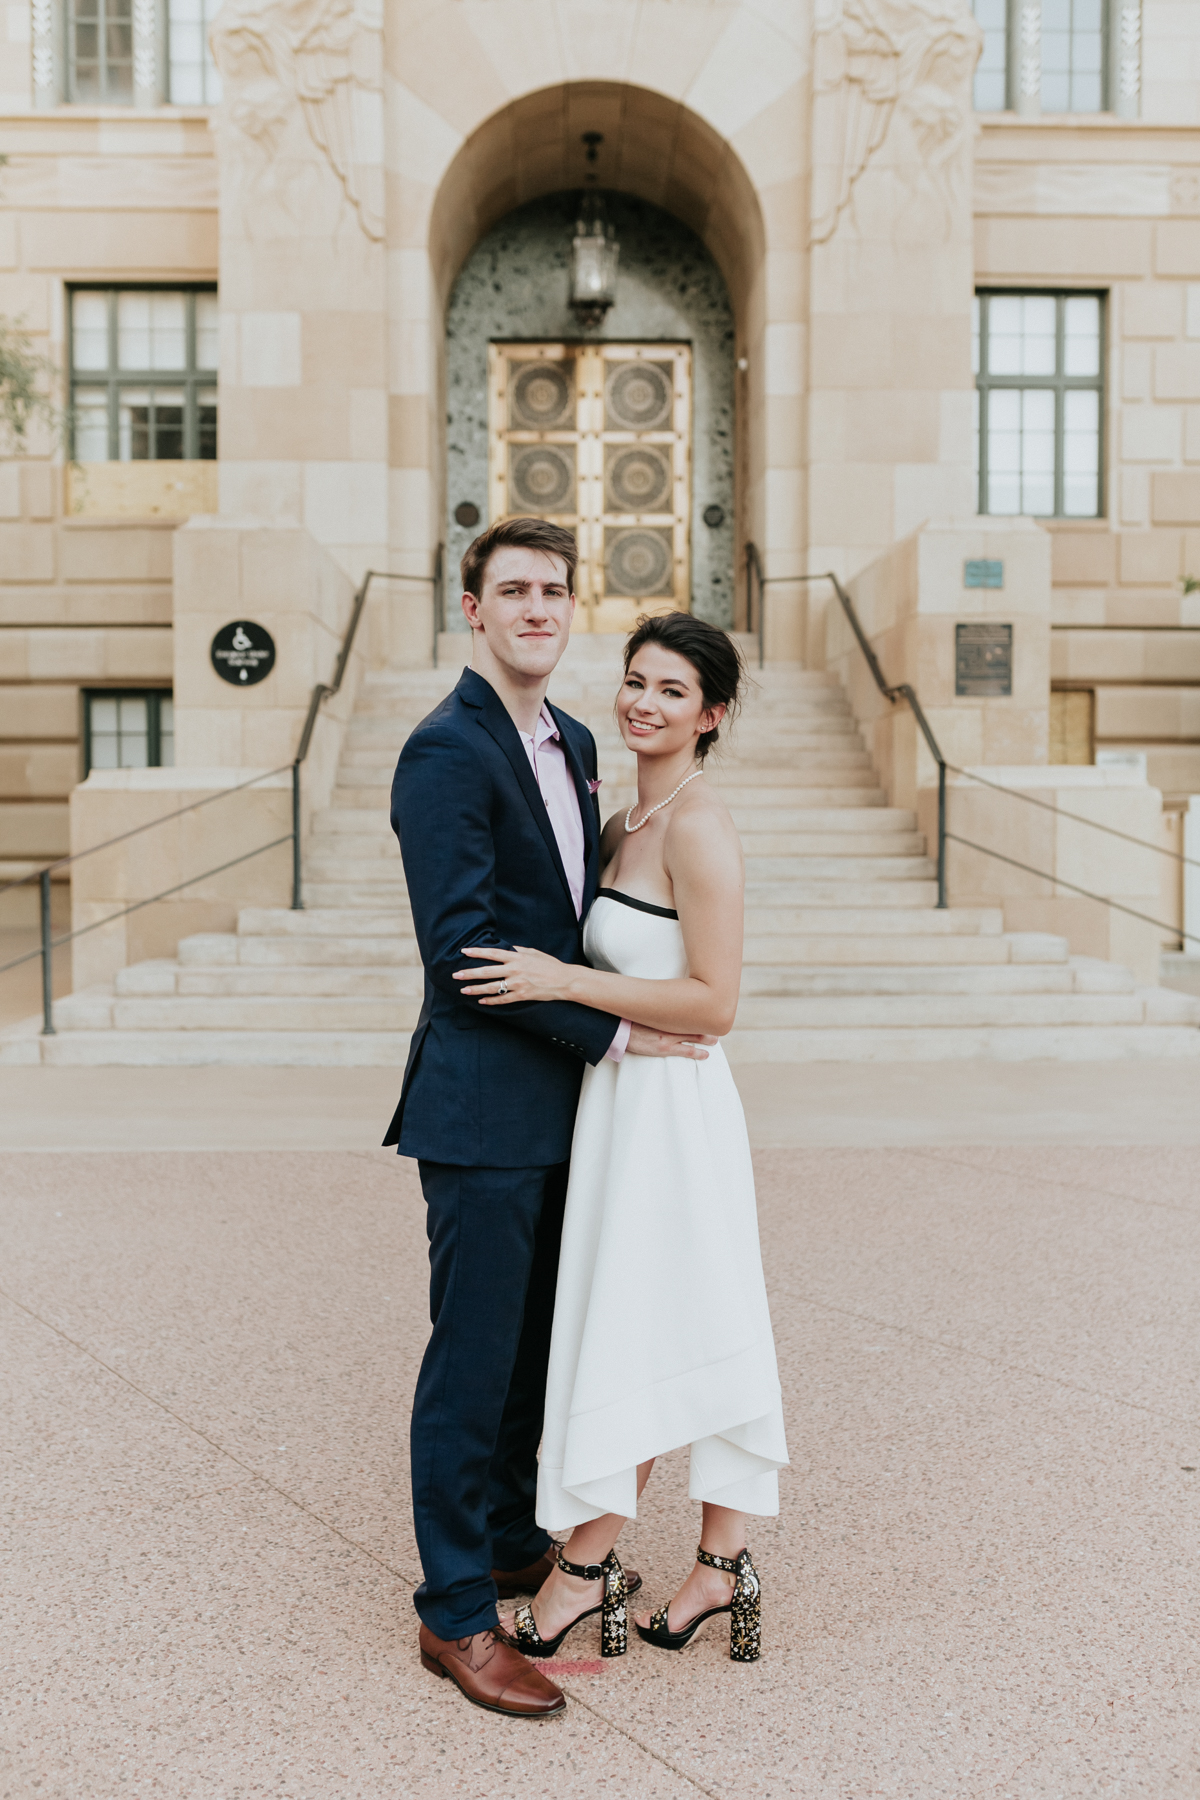 Megan Claire Photography | Phoenix Arizona Courthouse Wedding , Art Deco inspired wedding, vintage inspired wedding, arizona elopement photography, intimate wedding inspiration